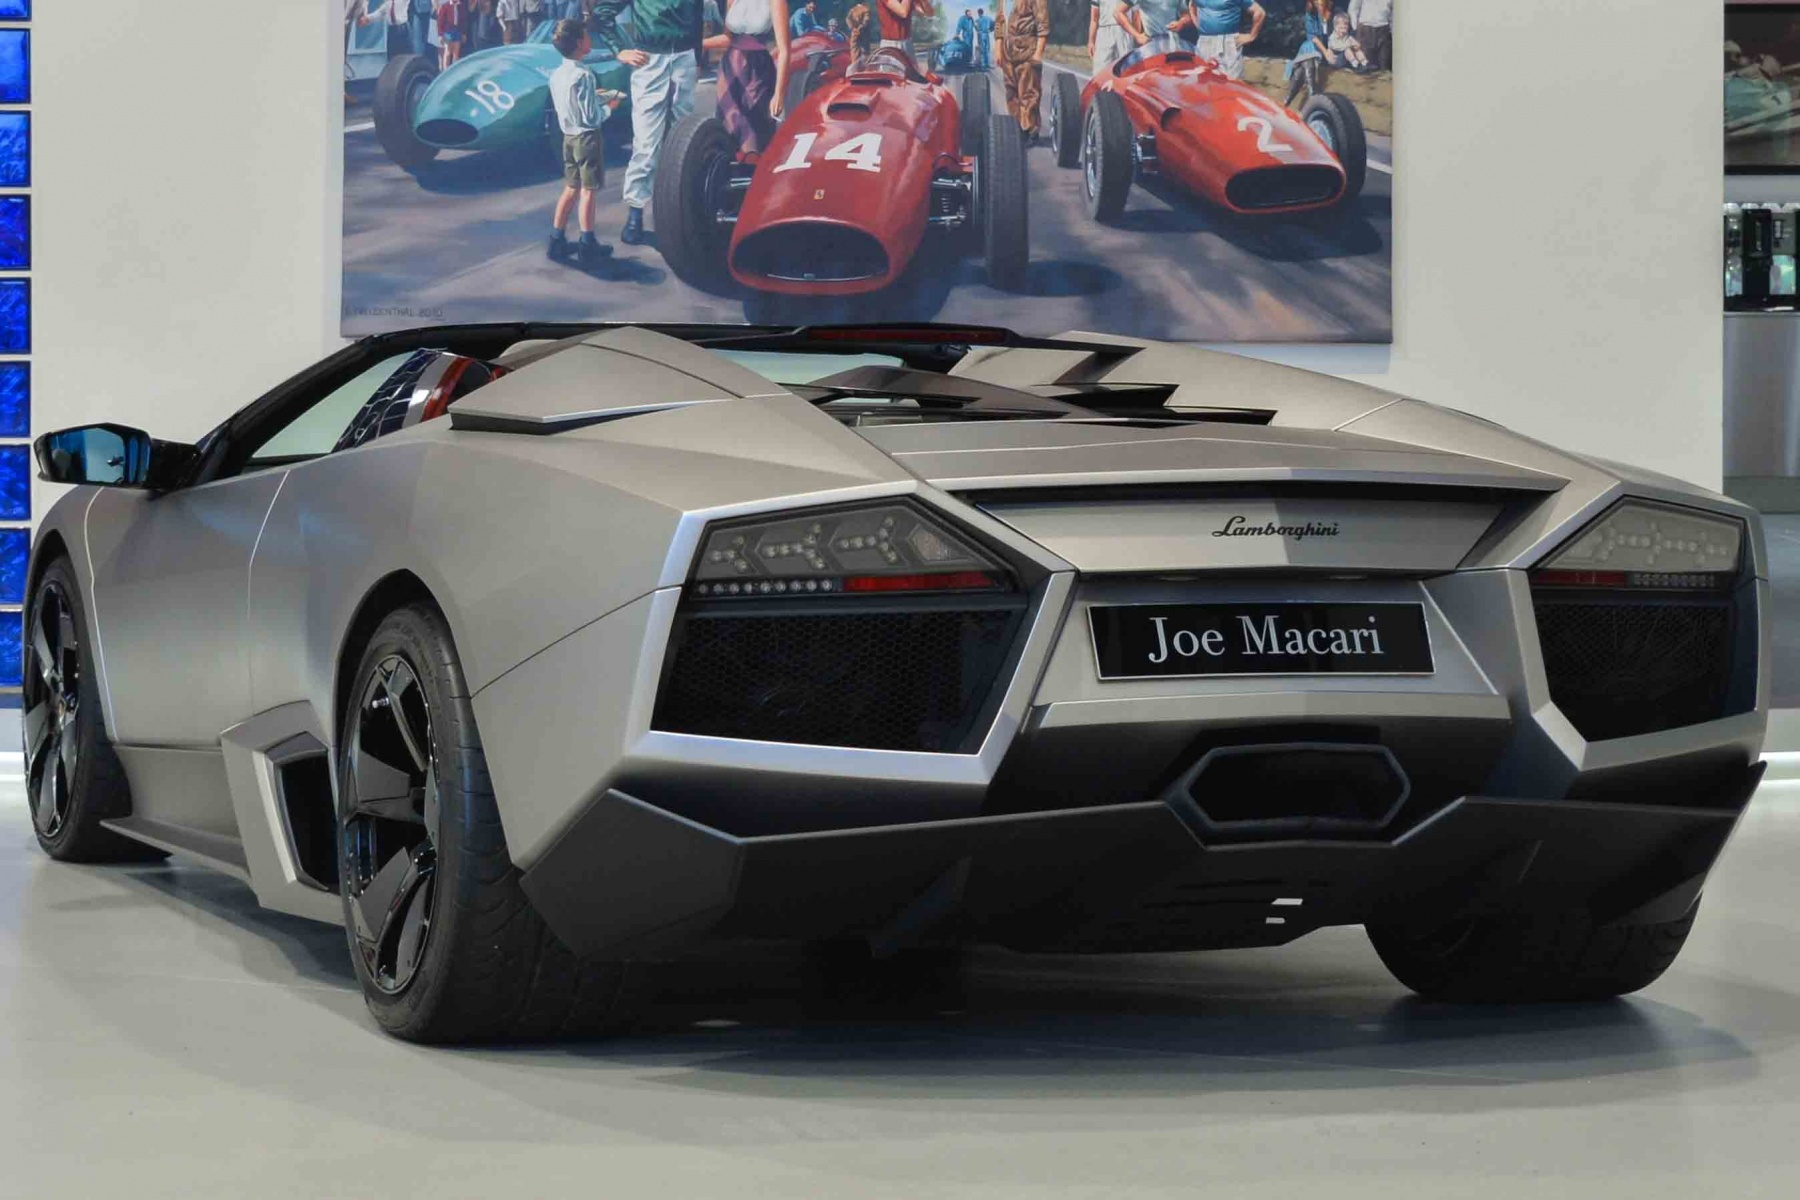 Mercedes For Sale >> 2010 Lamborghini Reventón Roadster | Supercar Report